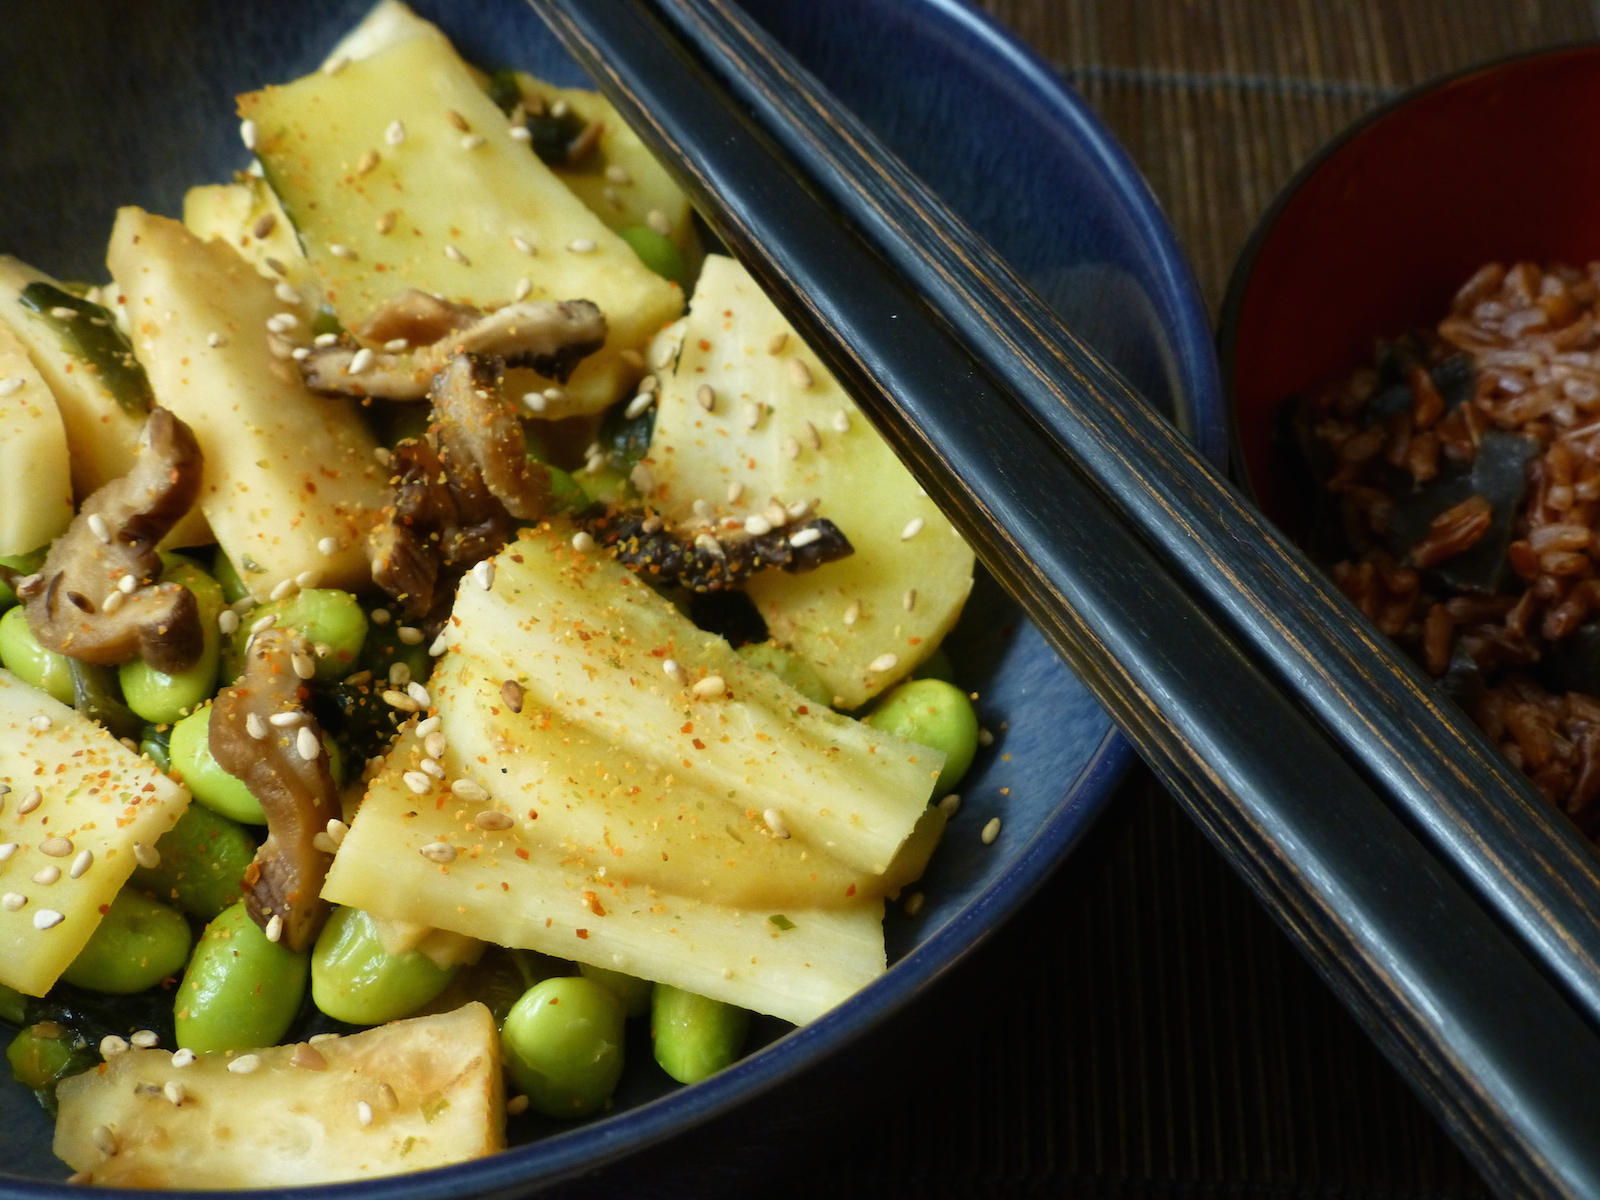 Nabe of parsnips, celeriac and soy beans with red rice